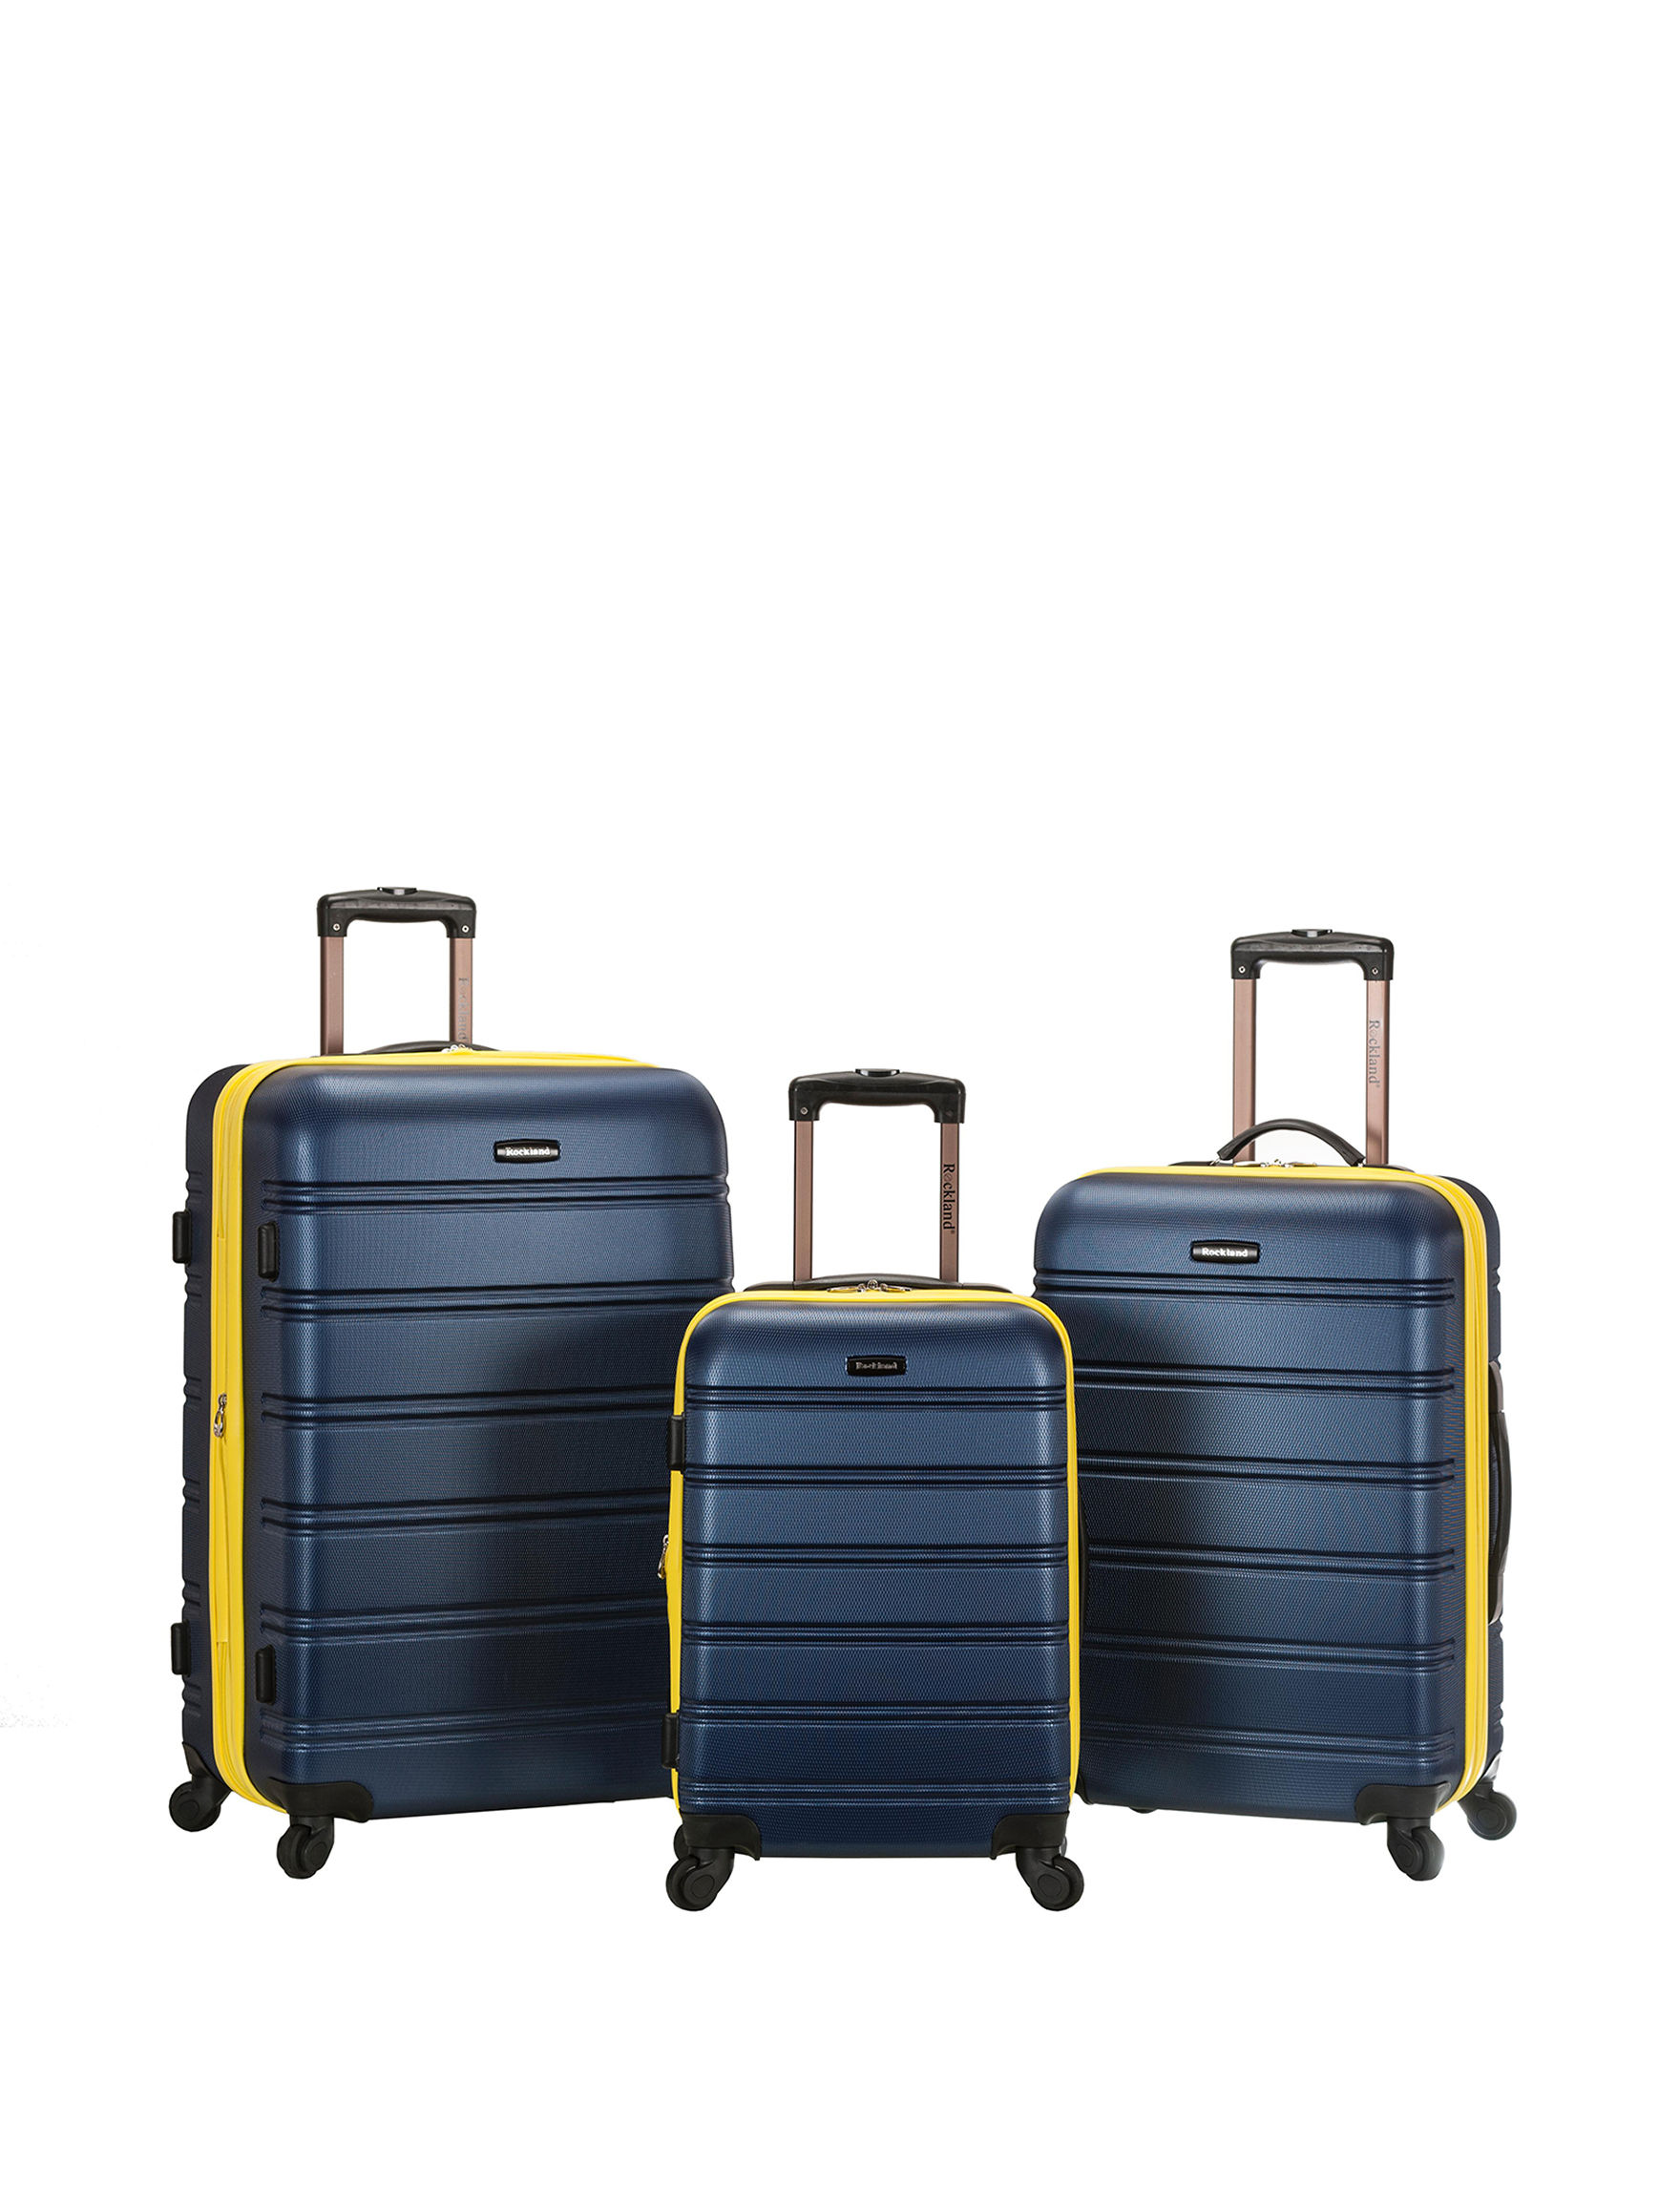 Rockland Navy Luggage Sets